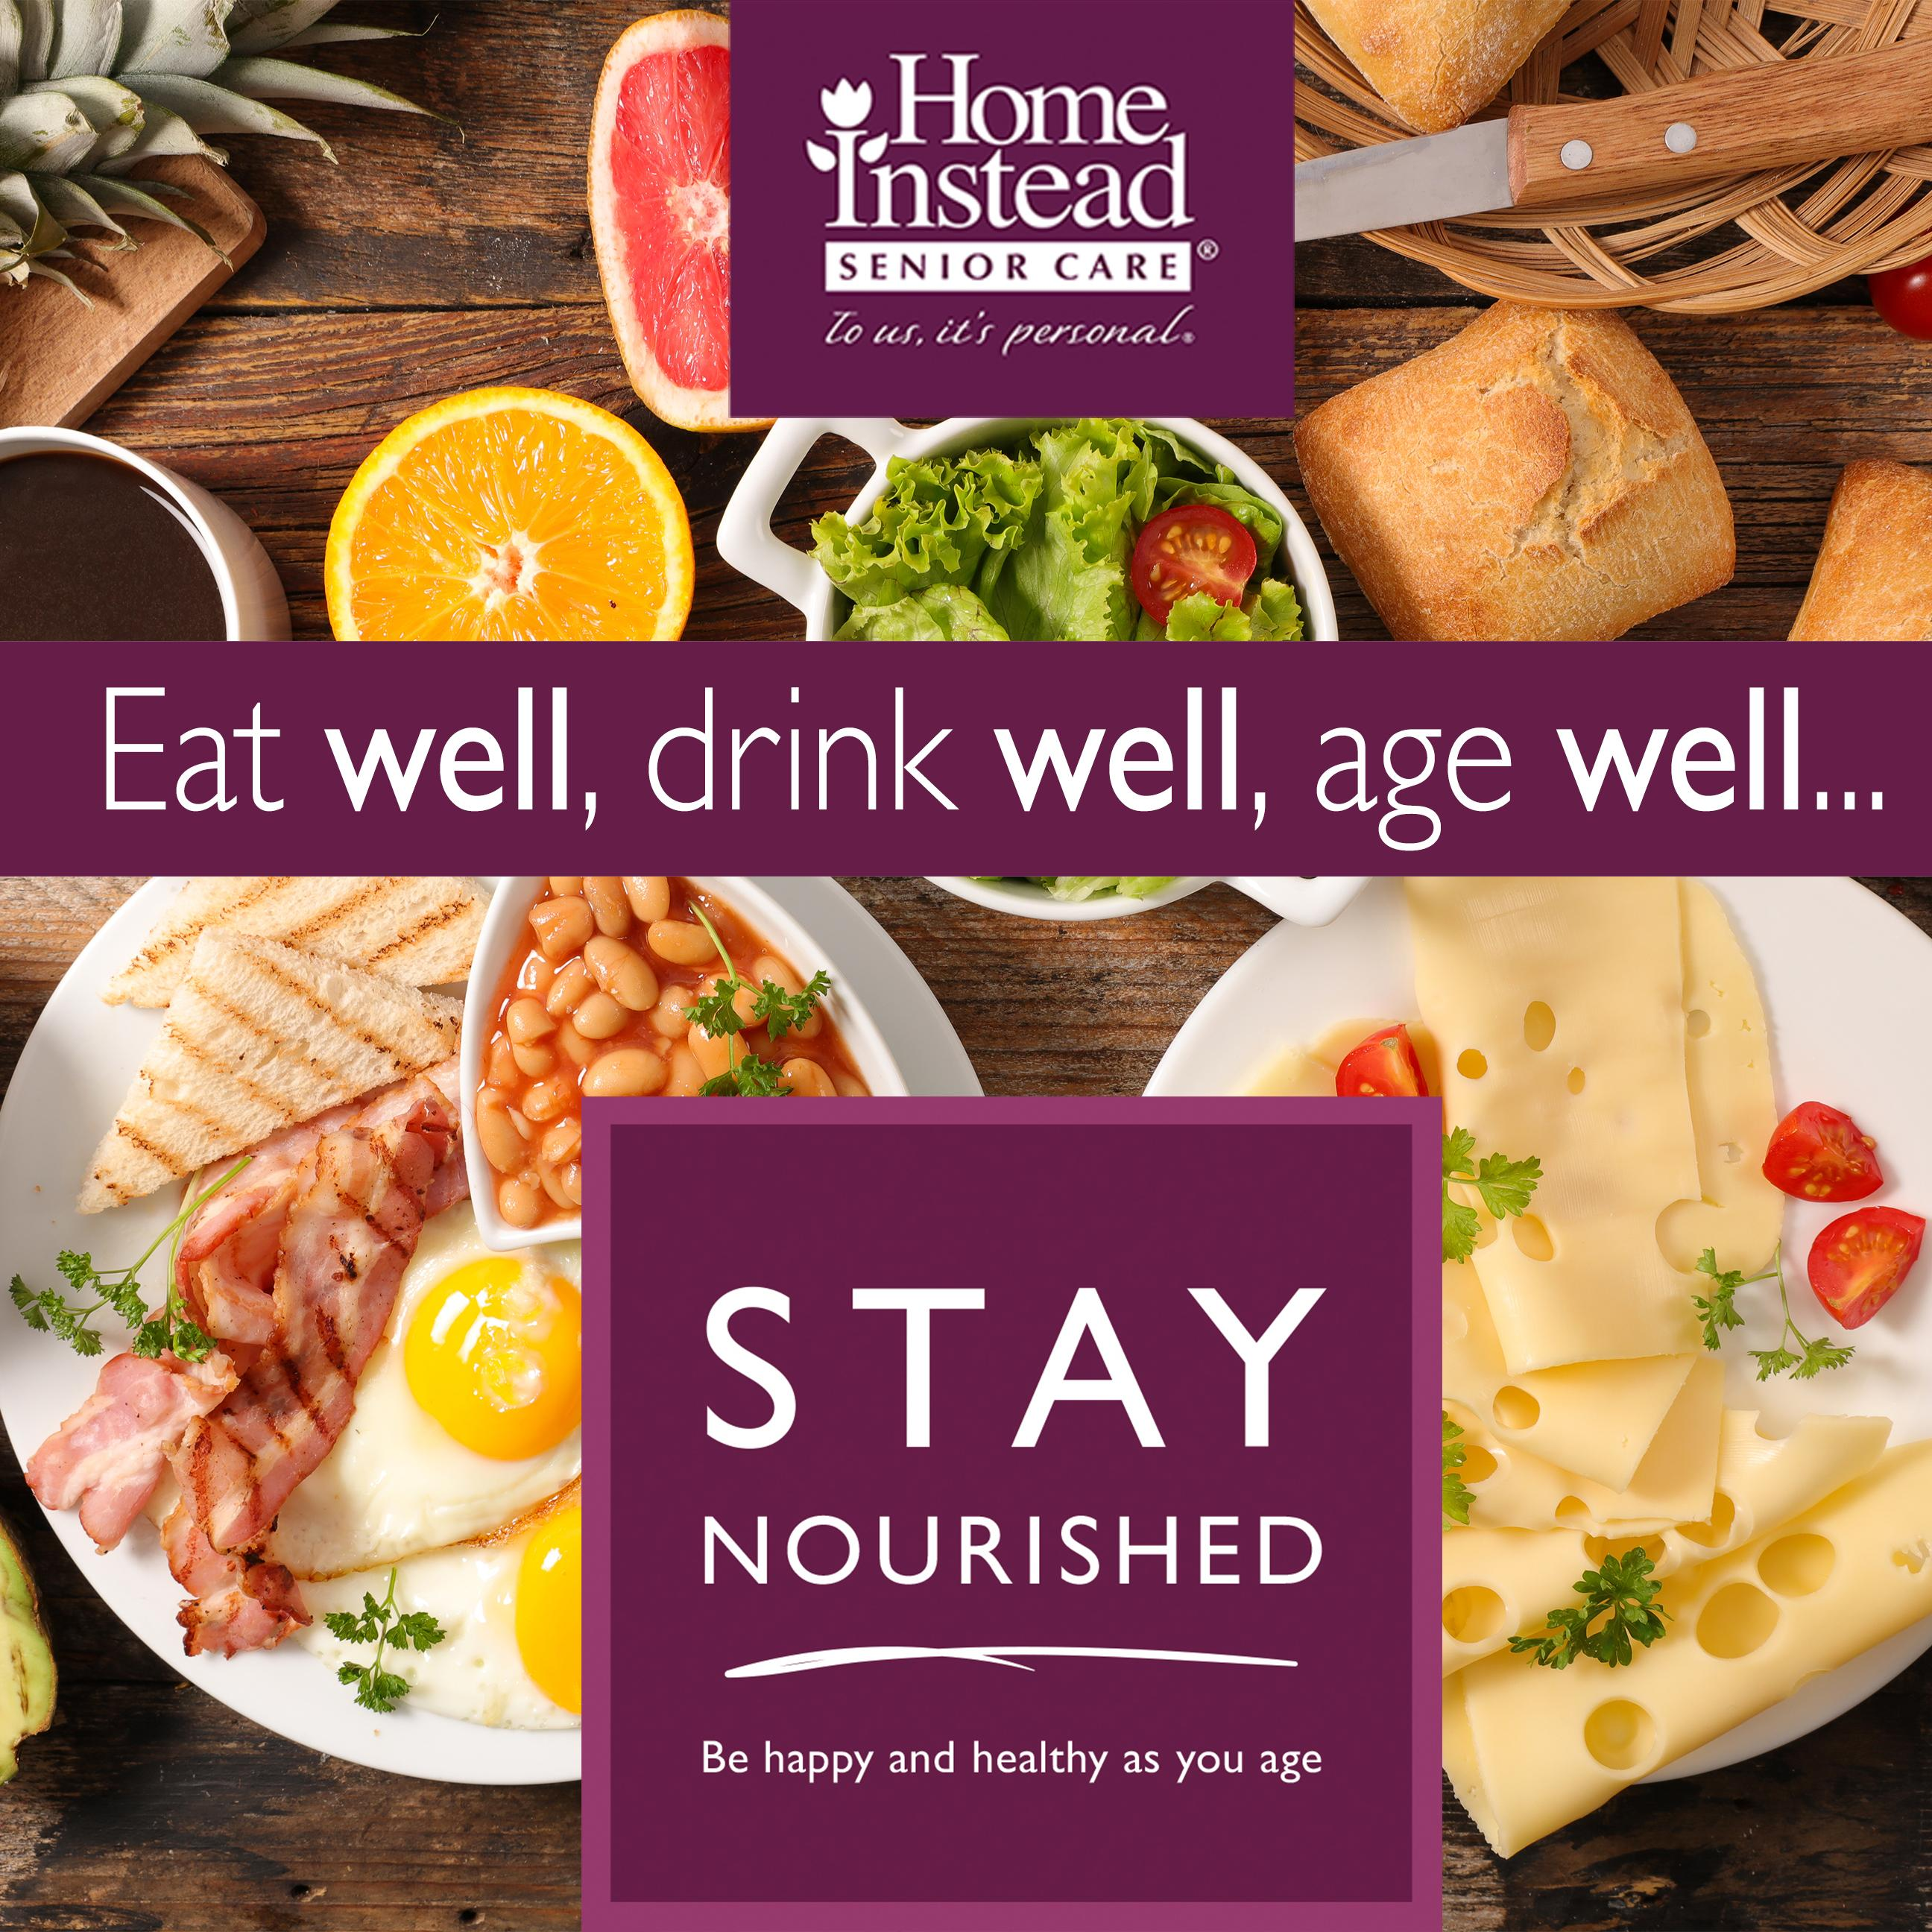 client, tips, health, stay nourished, home instead ,senior care, care,food,top tips